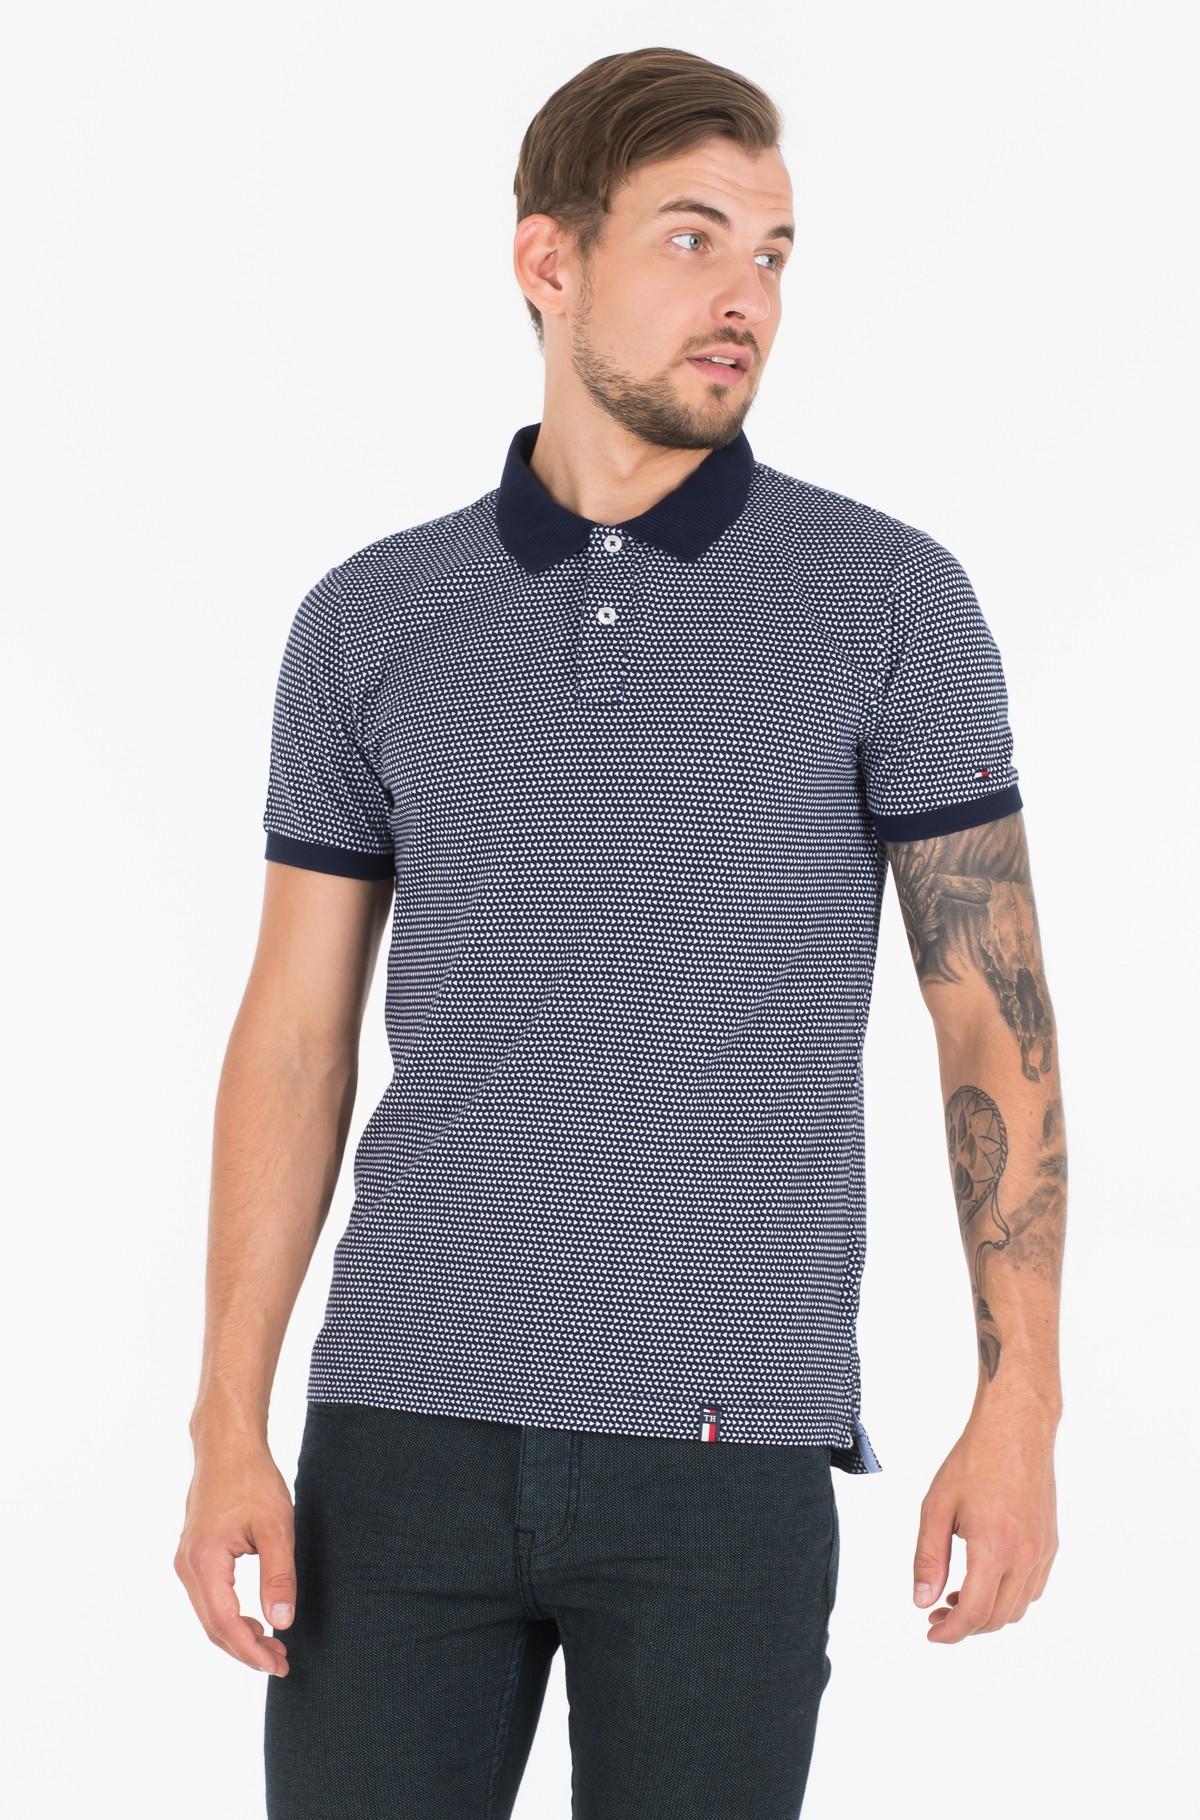 Polokrekls  MICRO TRIANGLE PRINT SLIM POLO-full-1